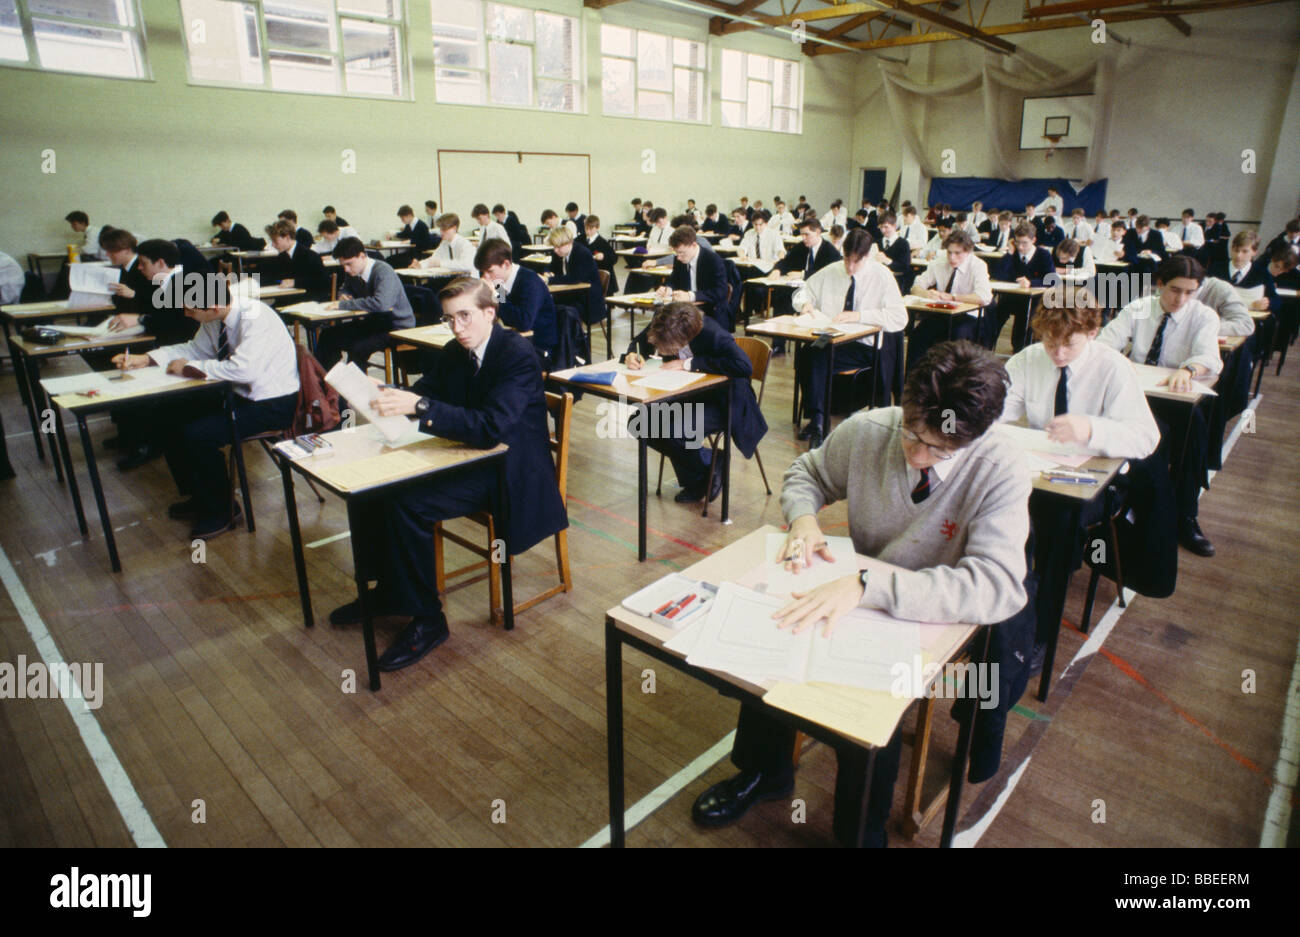 england-education-secondary-school-exams-boys-sitting-or-taking-gcse-BBEERM.jpg?profile=RESIZE_400x